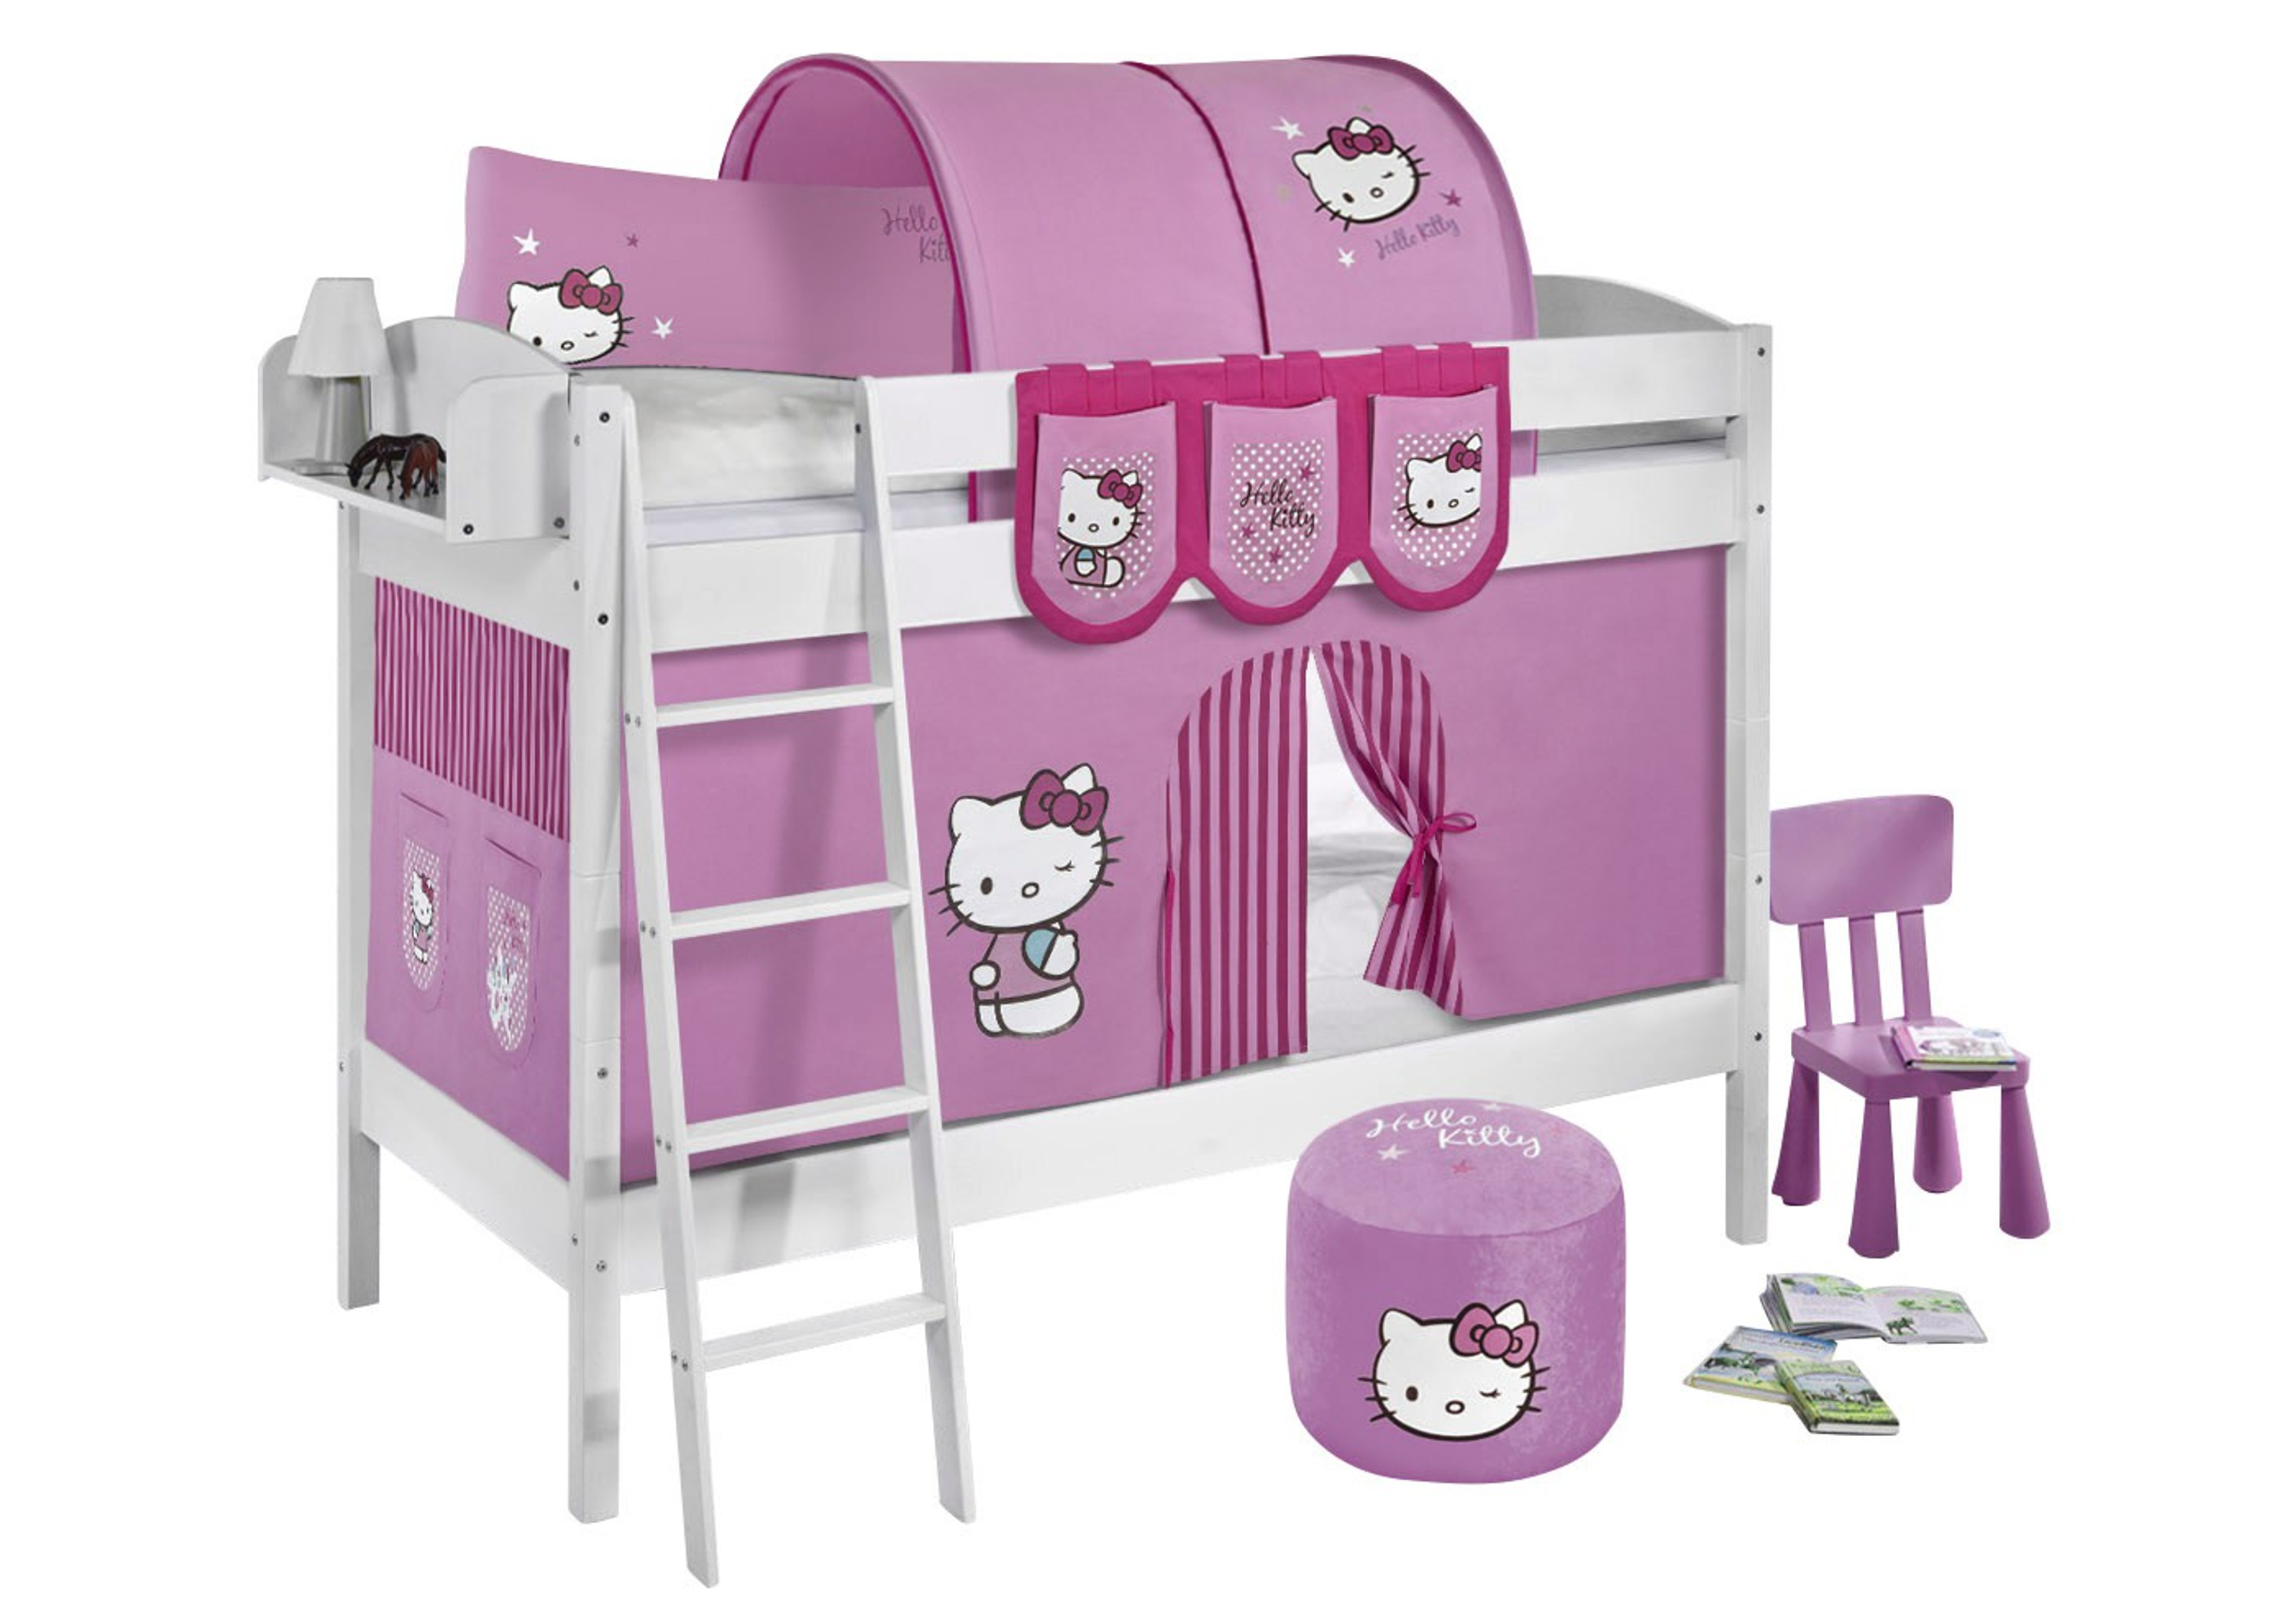 etagenbett hello kitty rosa wei mit vorhang und. Black Bedroom Furniture Sets. Home Design Ideas